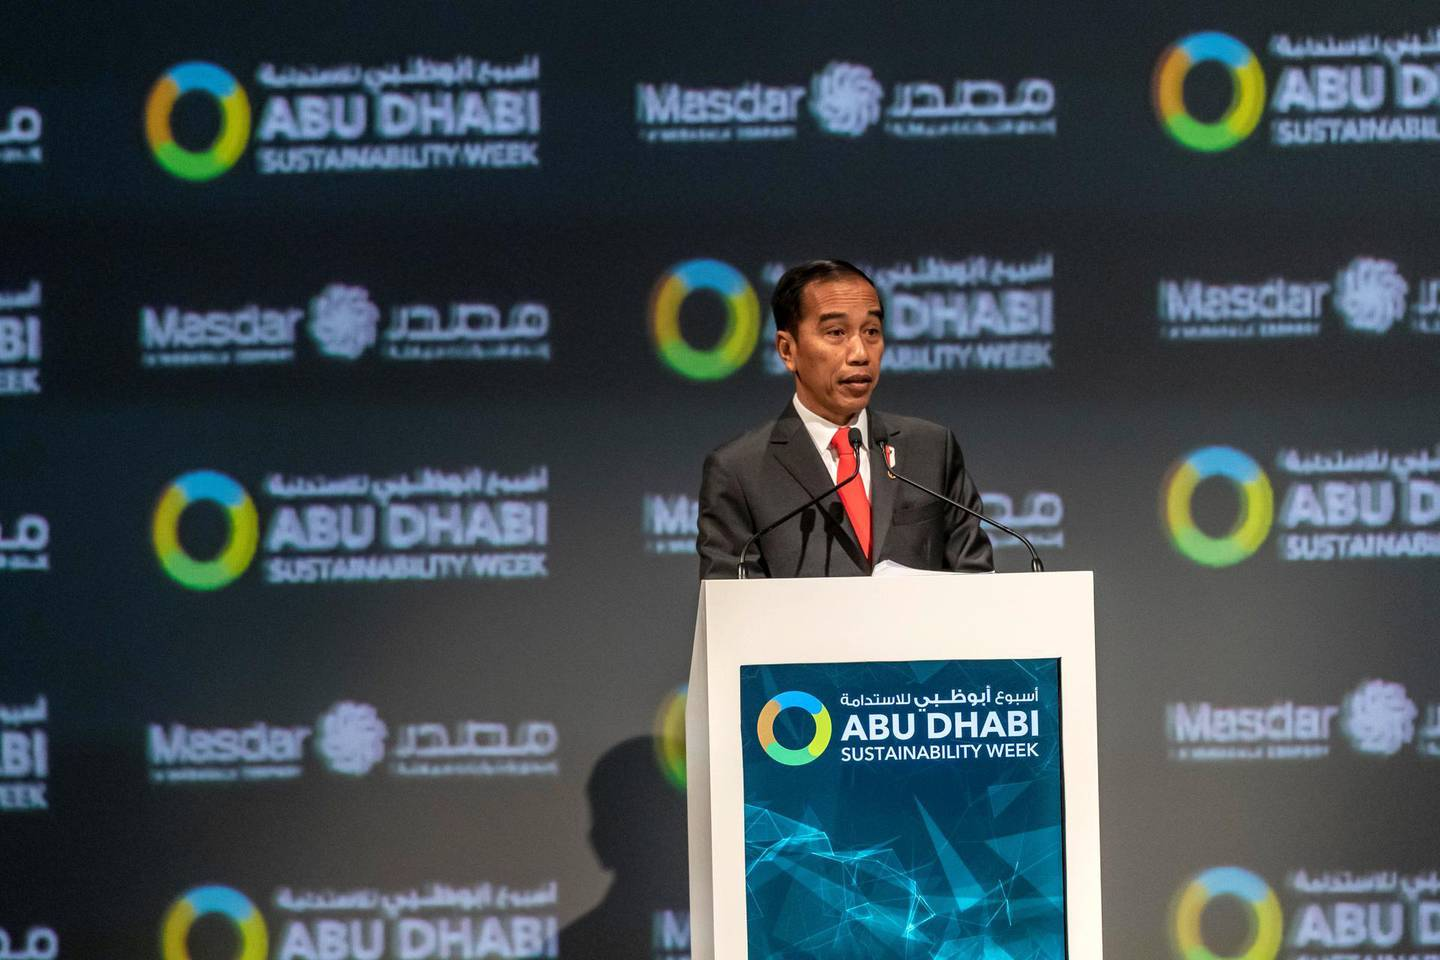 ABU DHABI, UNITED ARAB EMIRATES. 13 JANUARY 2020. The Zayed Sustainability Awards held at ADNEC as part of Abu Dhabi Sustainability Week. H.E. Joko Widodo, President of the Republic of Indonesia. (Photo: Antonie Robertson/The National) Journalist: Kelly Clarker. Section: National.